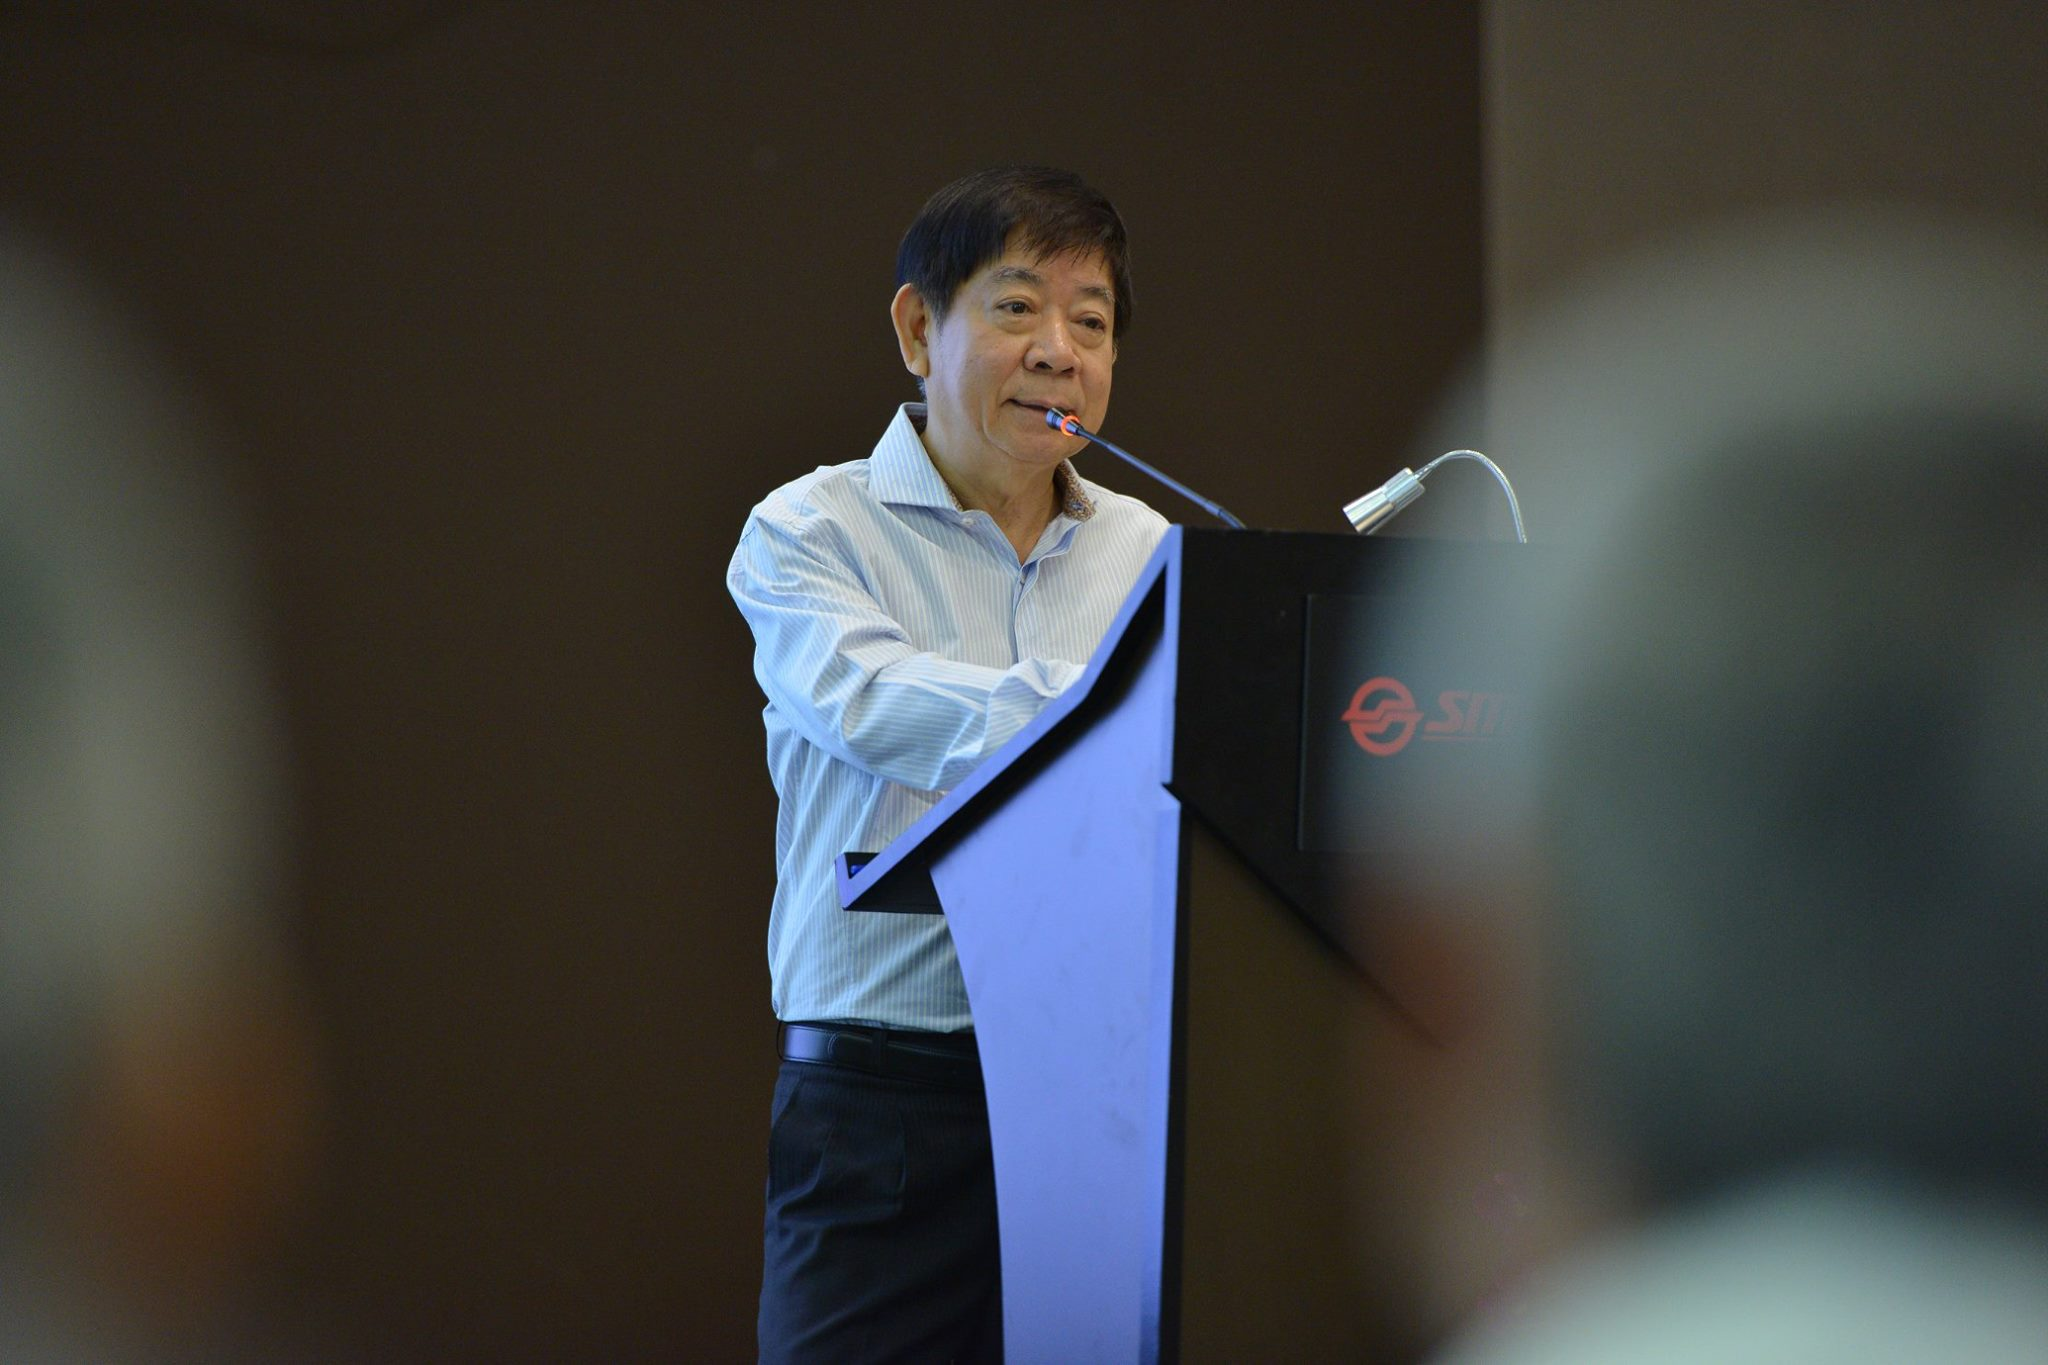 Coordinating Minister for Infrastructure and Transport Khaw Boon Wan. Photo courtesy: Khaw Boon Wan Facebook